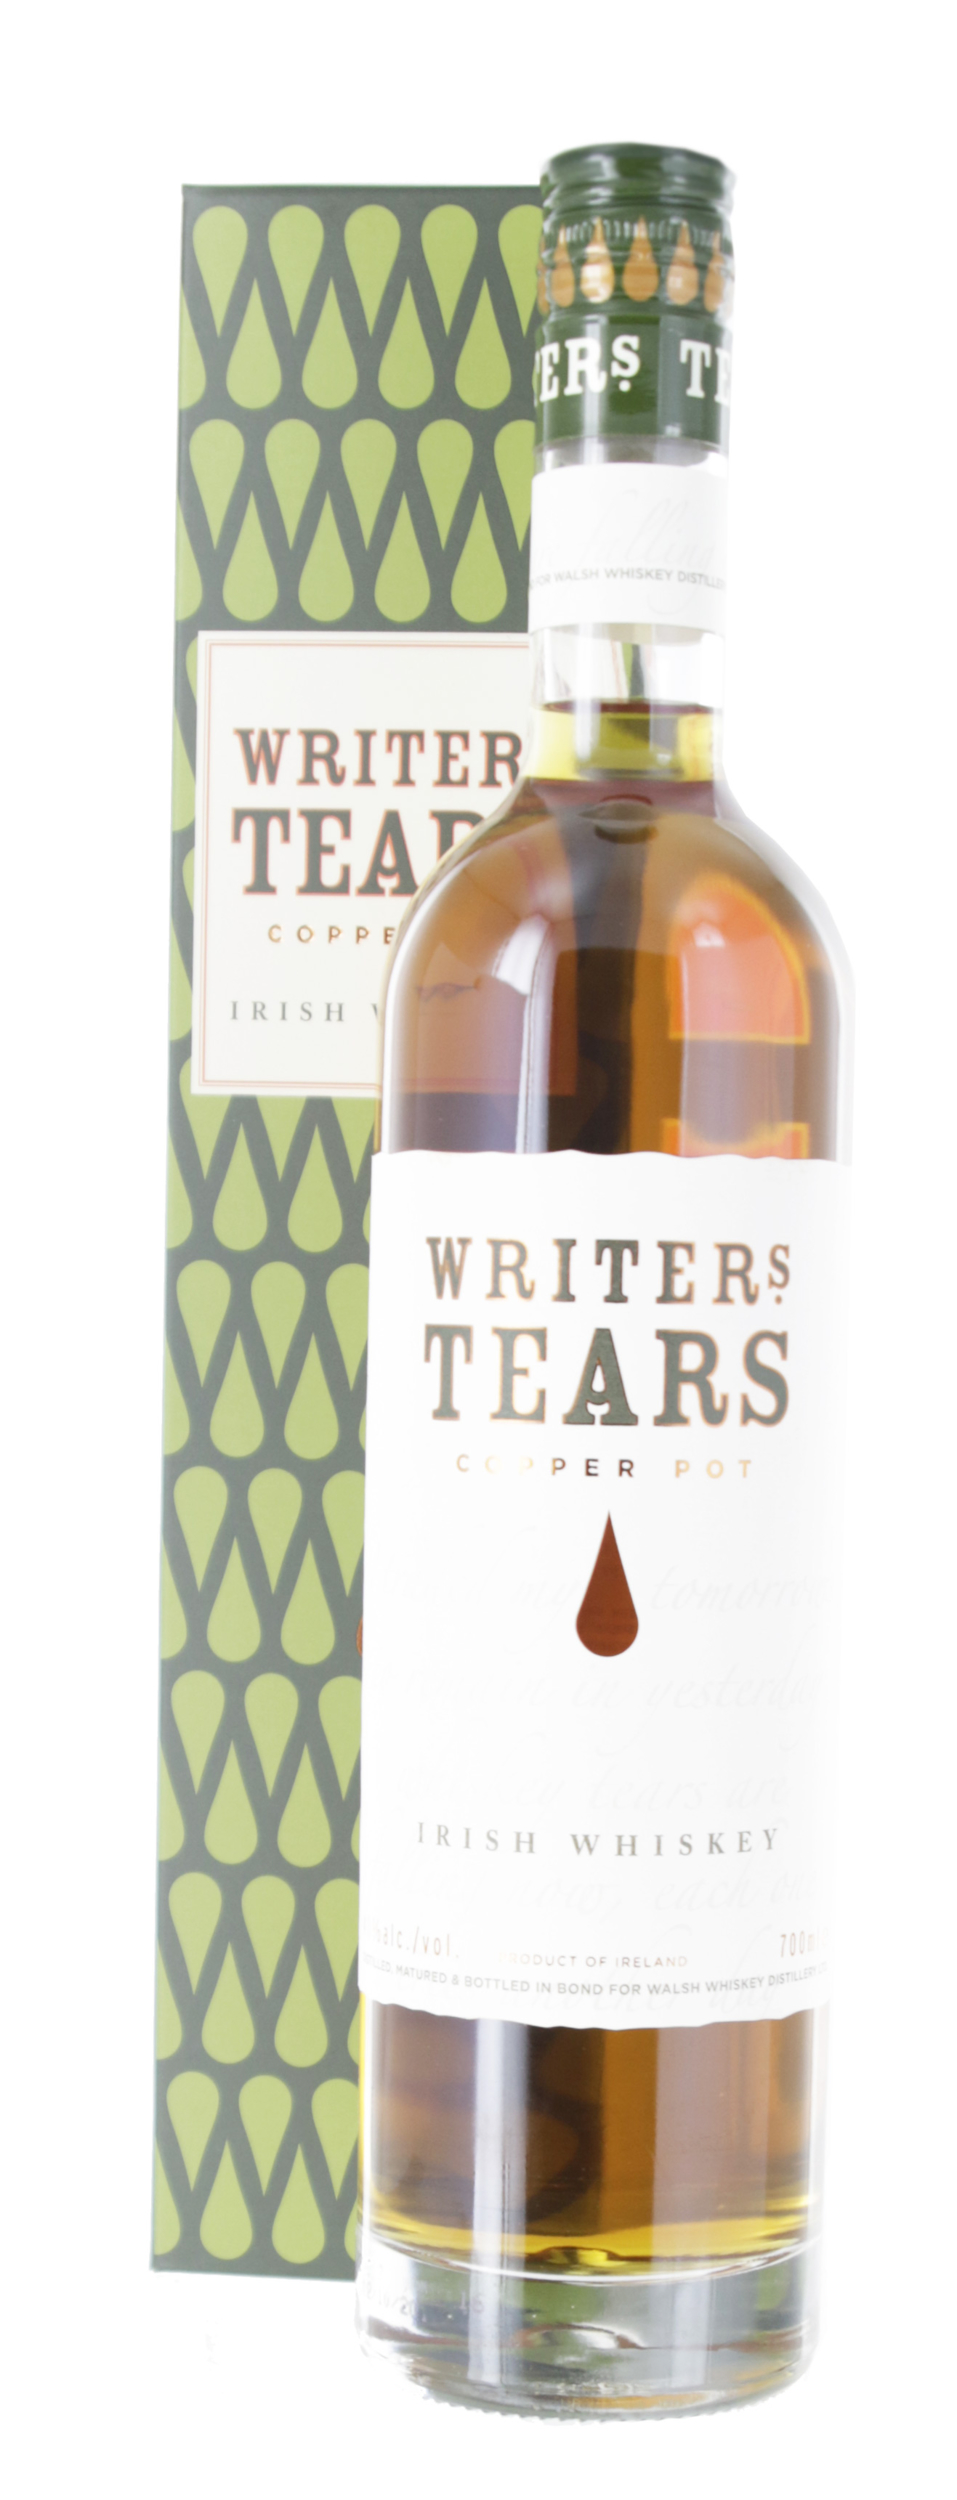 Whisky - Writers Tears - Copper Pot - Irlande - Blended Whisky -  Non tourbé - 70cl - 40°